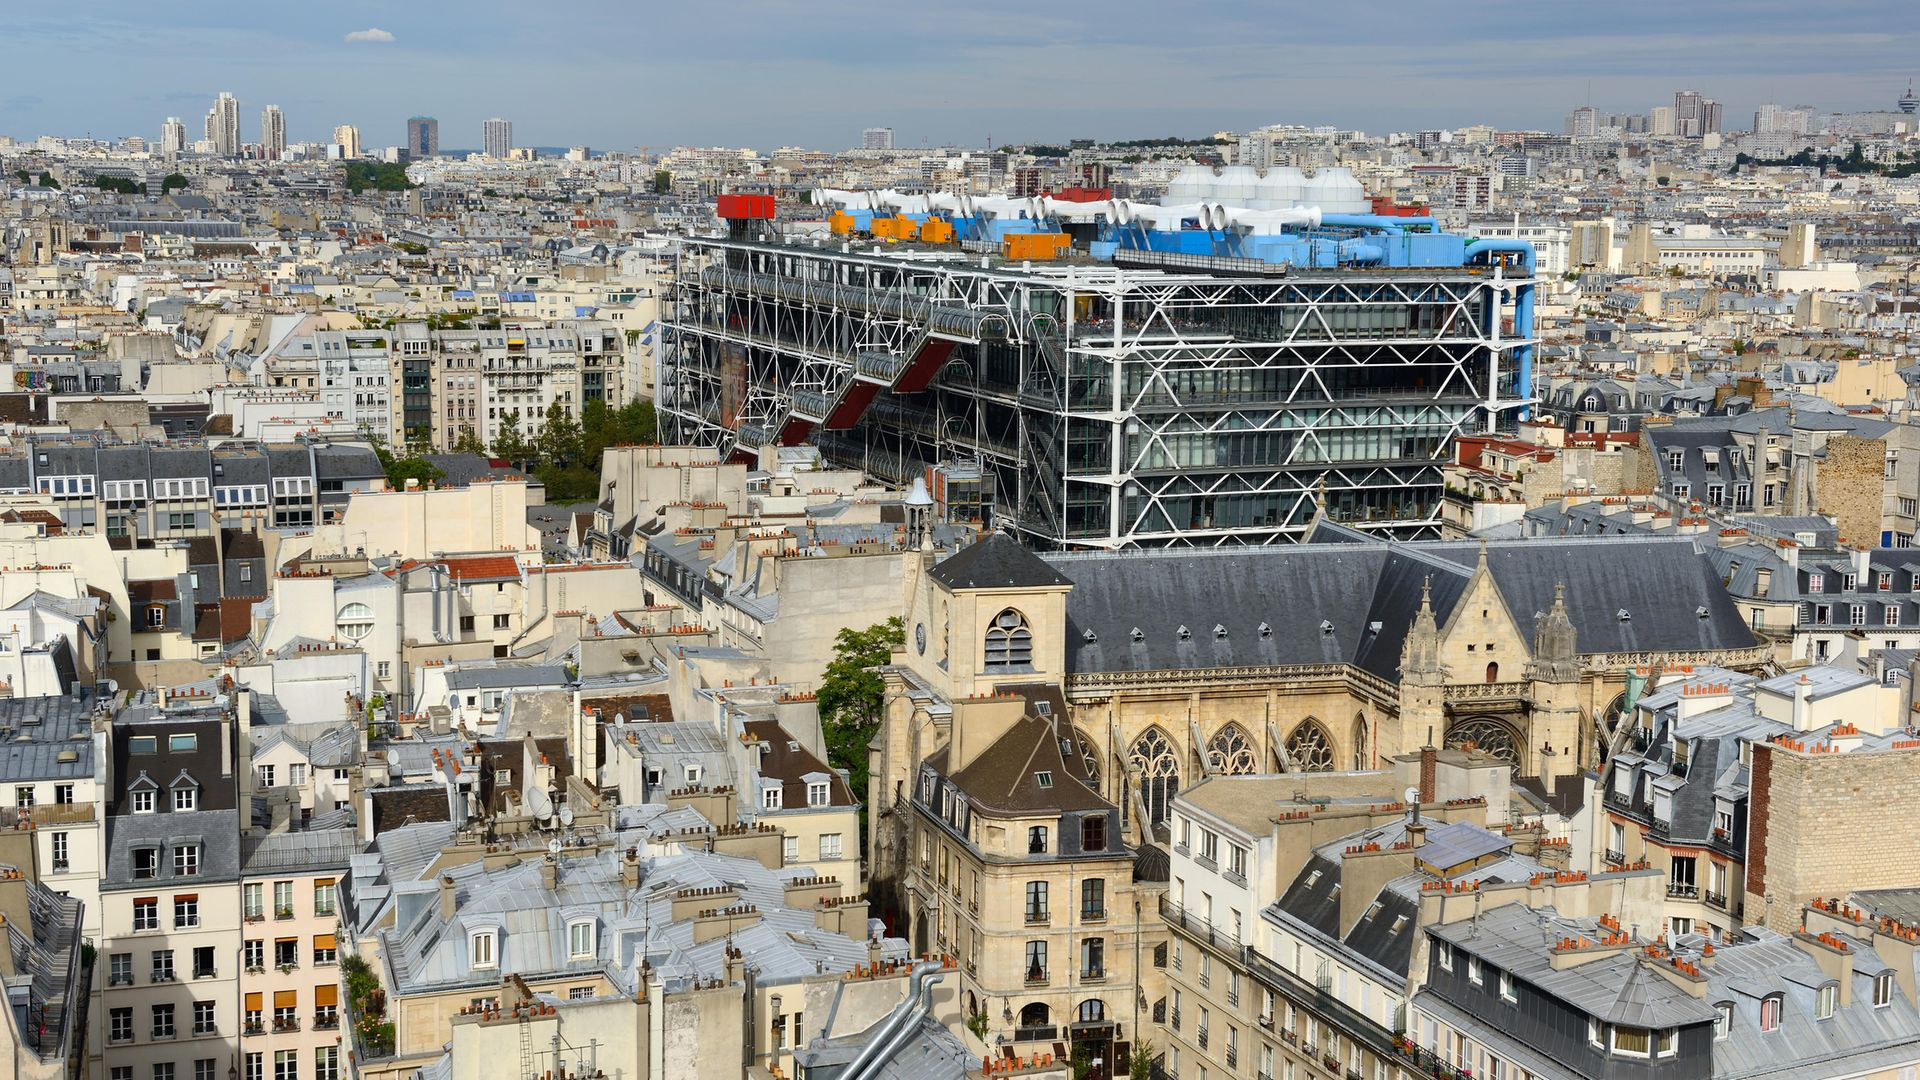 A view of Paris, including the Pompidou Centre in the foreground, from the Tour Saint-Jacques - Credit: Corbis via Getty Images